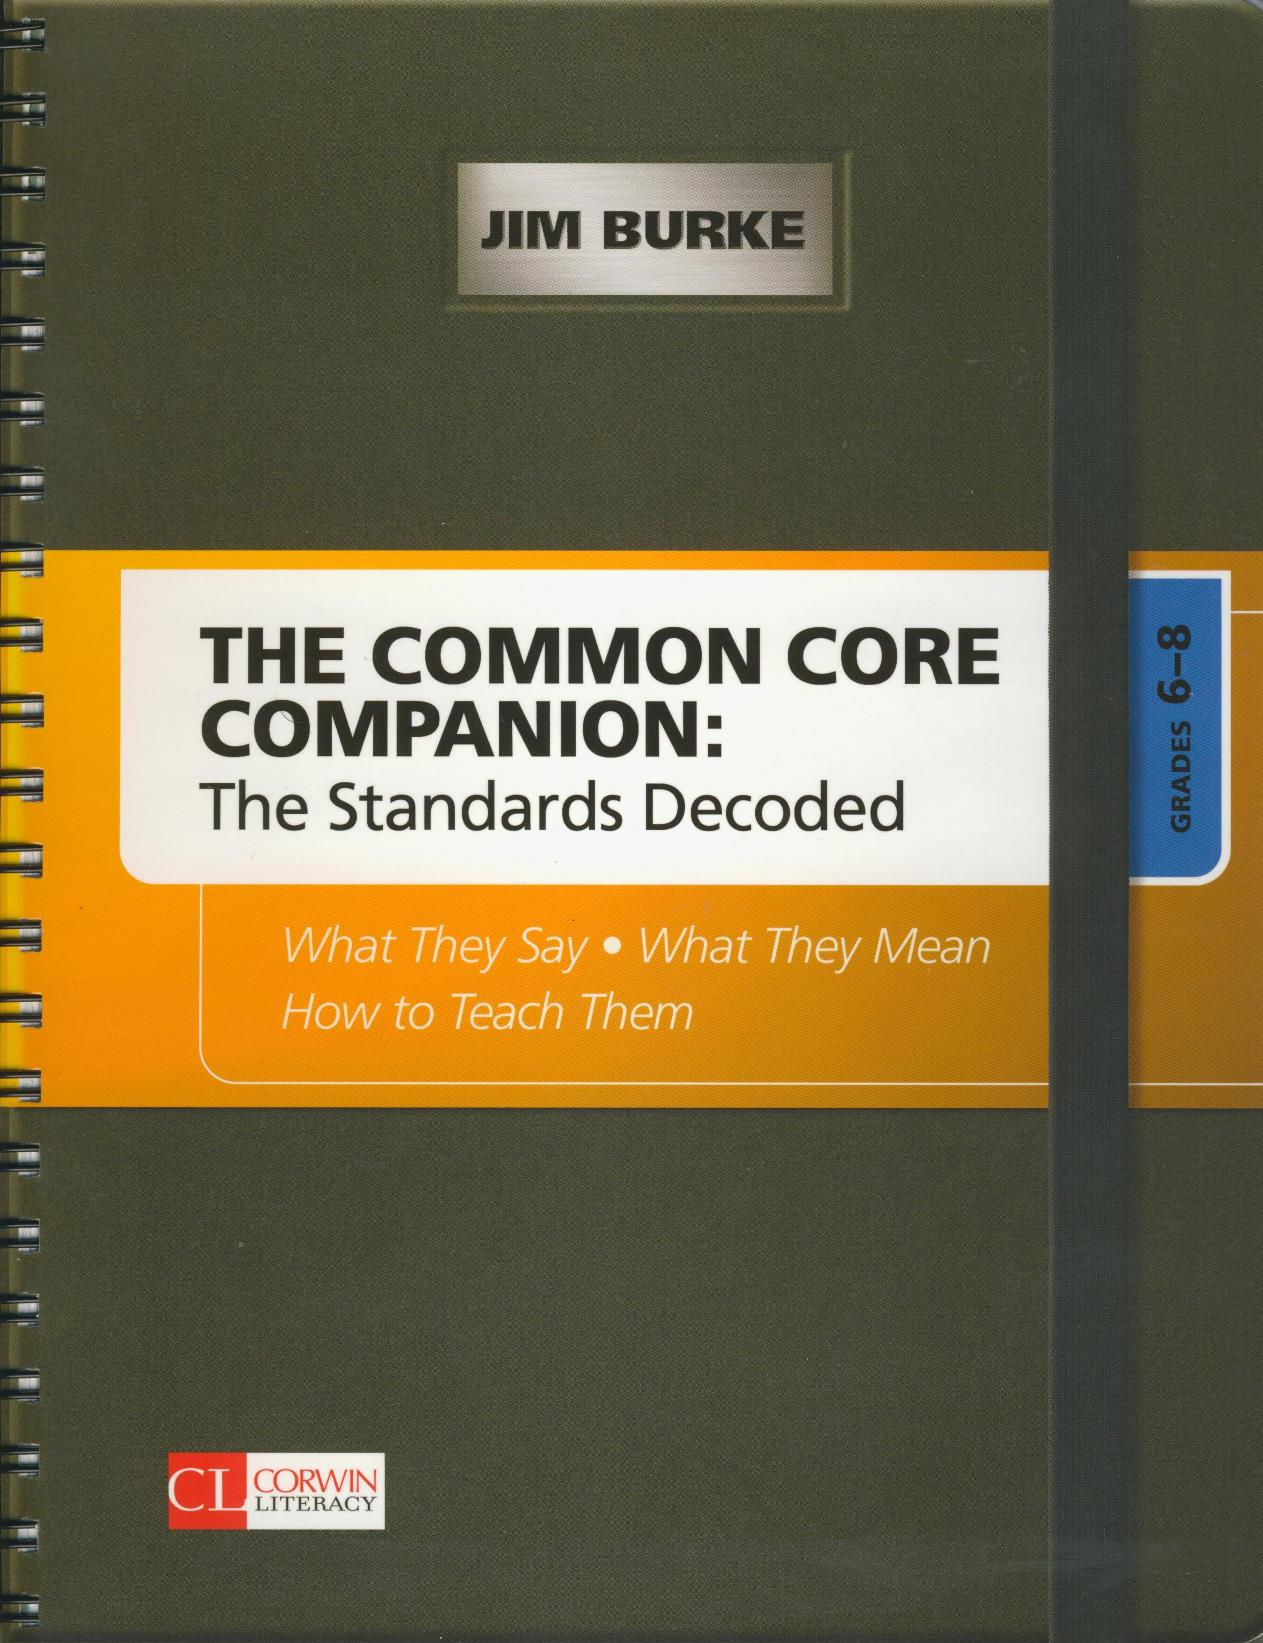 Common Core Companion: Standards Decoded Grade 6-8 Resource Book